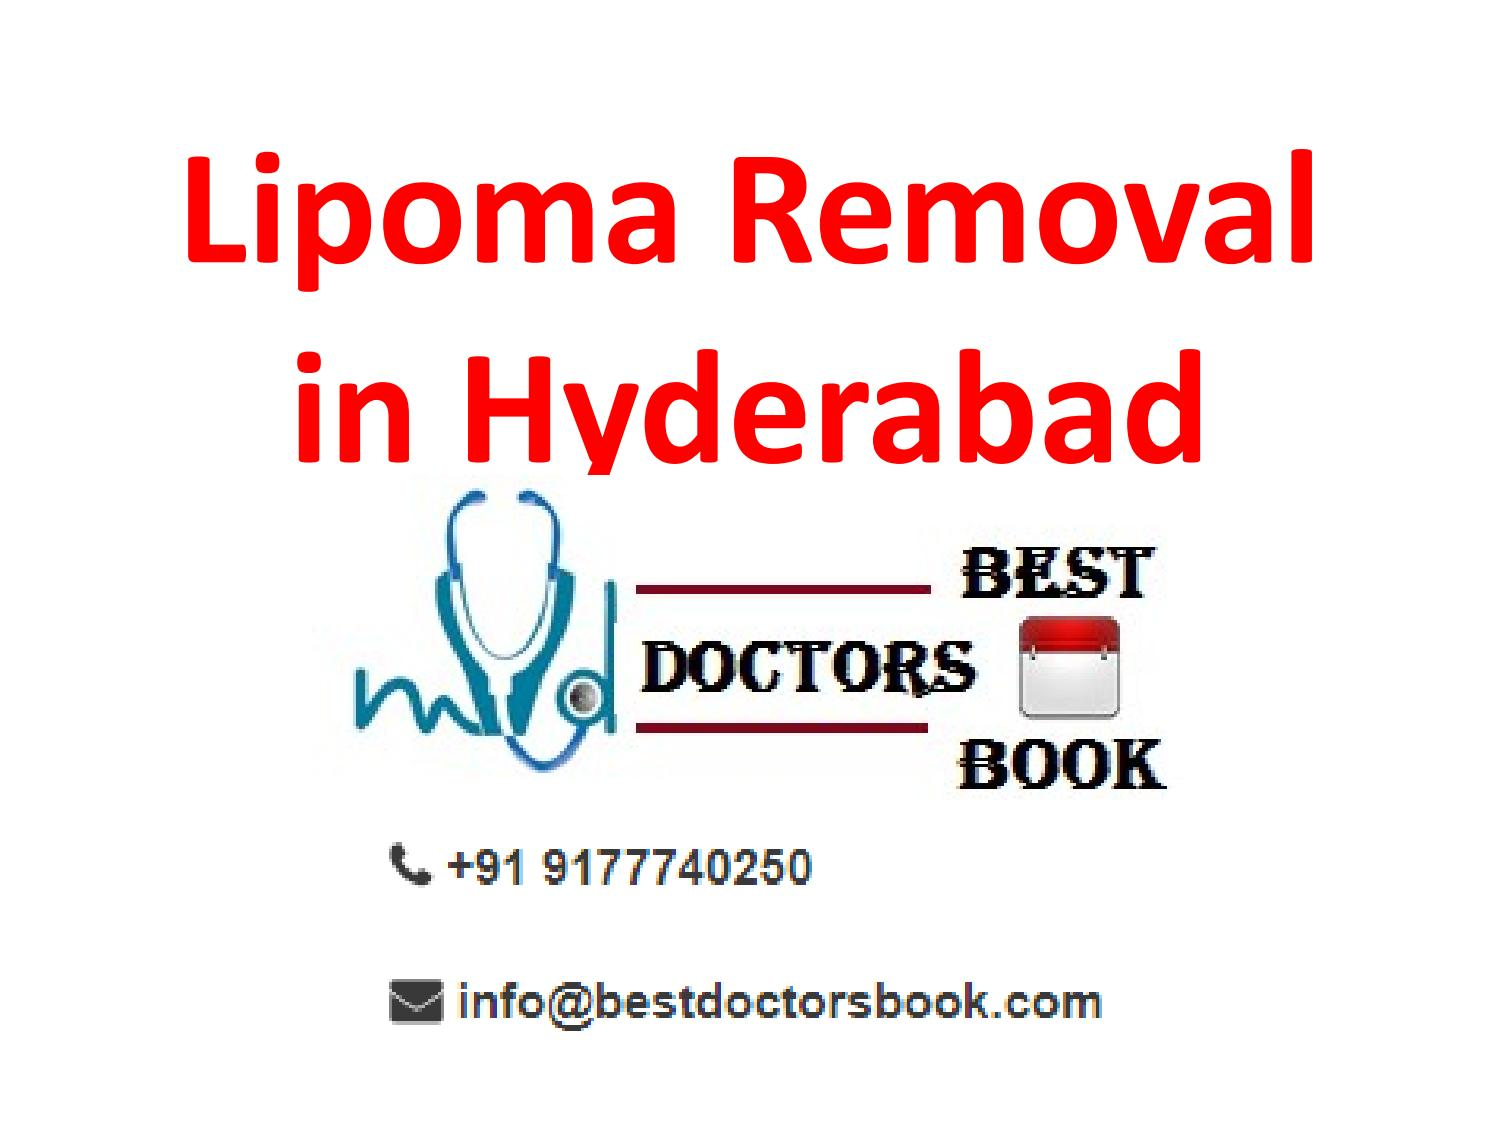 Lipoma Removal Cost in Hyderabad | Lipoma Doctor in Hyderabad by